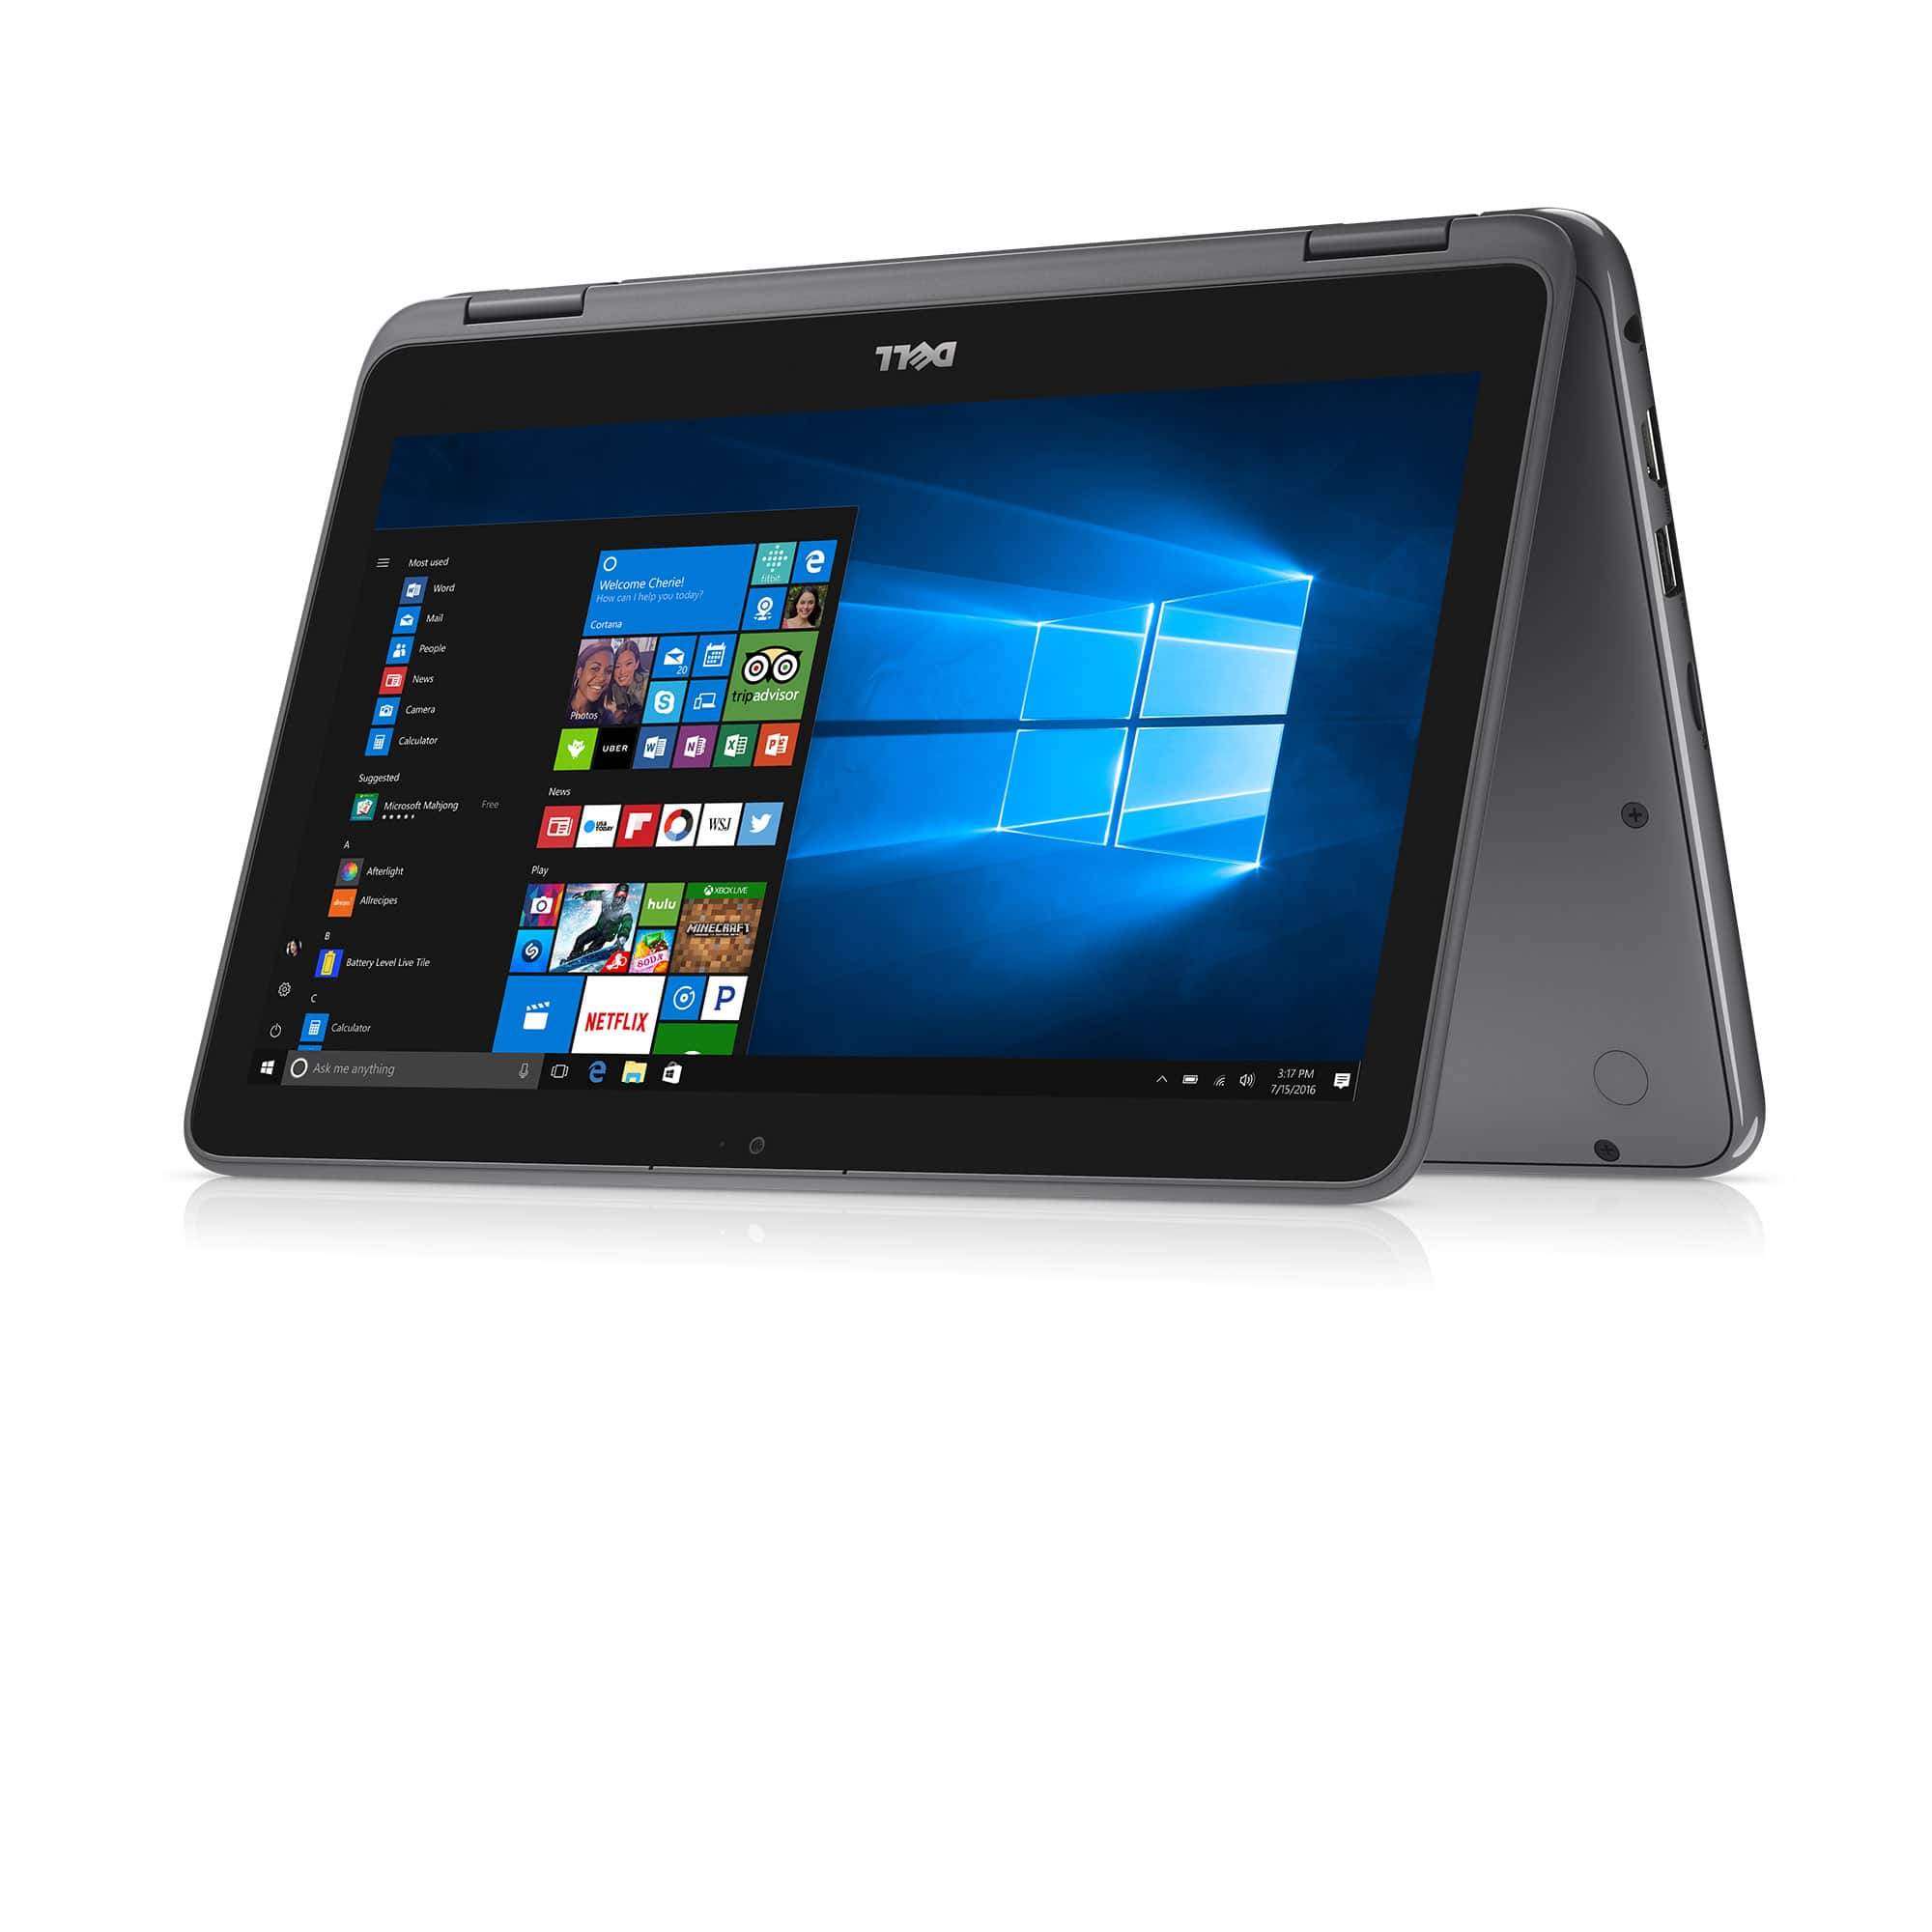 """Dell Inspiron 11 3000 2-in-1 11.6"""" Touch Laptop: AMD A6-9220e, 4GB DDR4, 32GB eMMC, Radeon R4, Win 10 $199 + Free Shipping @ Walmart"""